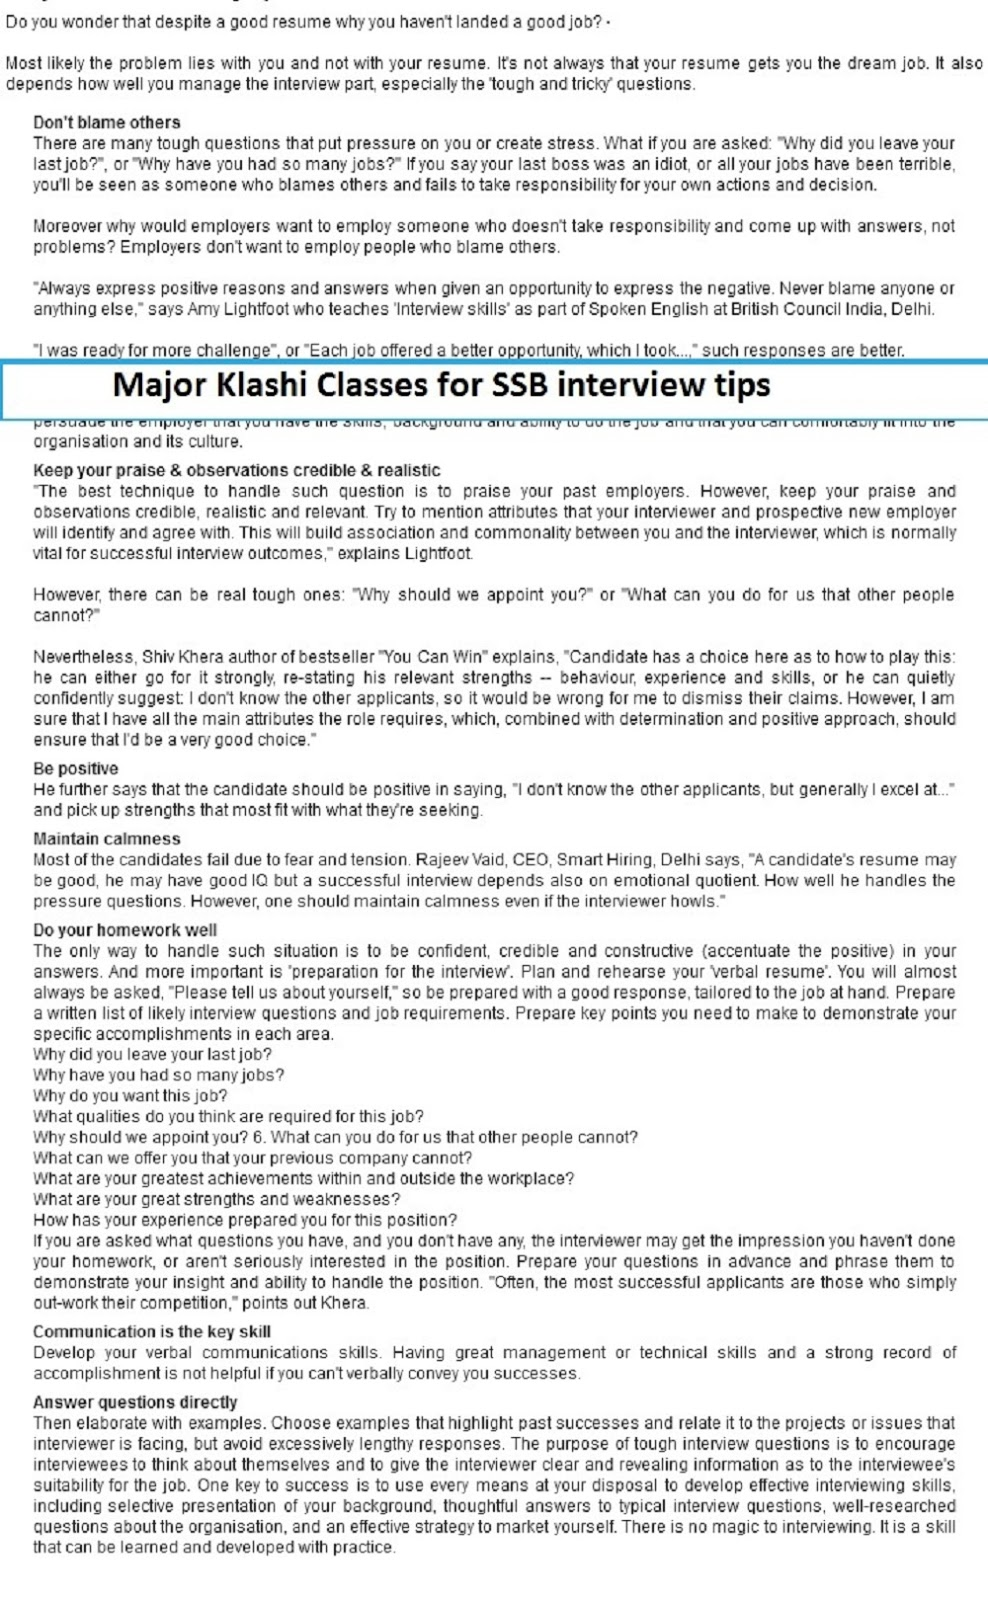 best coaching for ssb for more information at ssb interview coaching